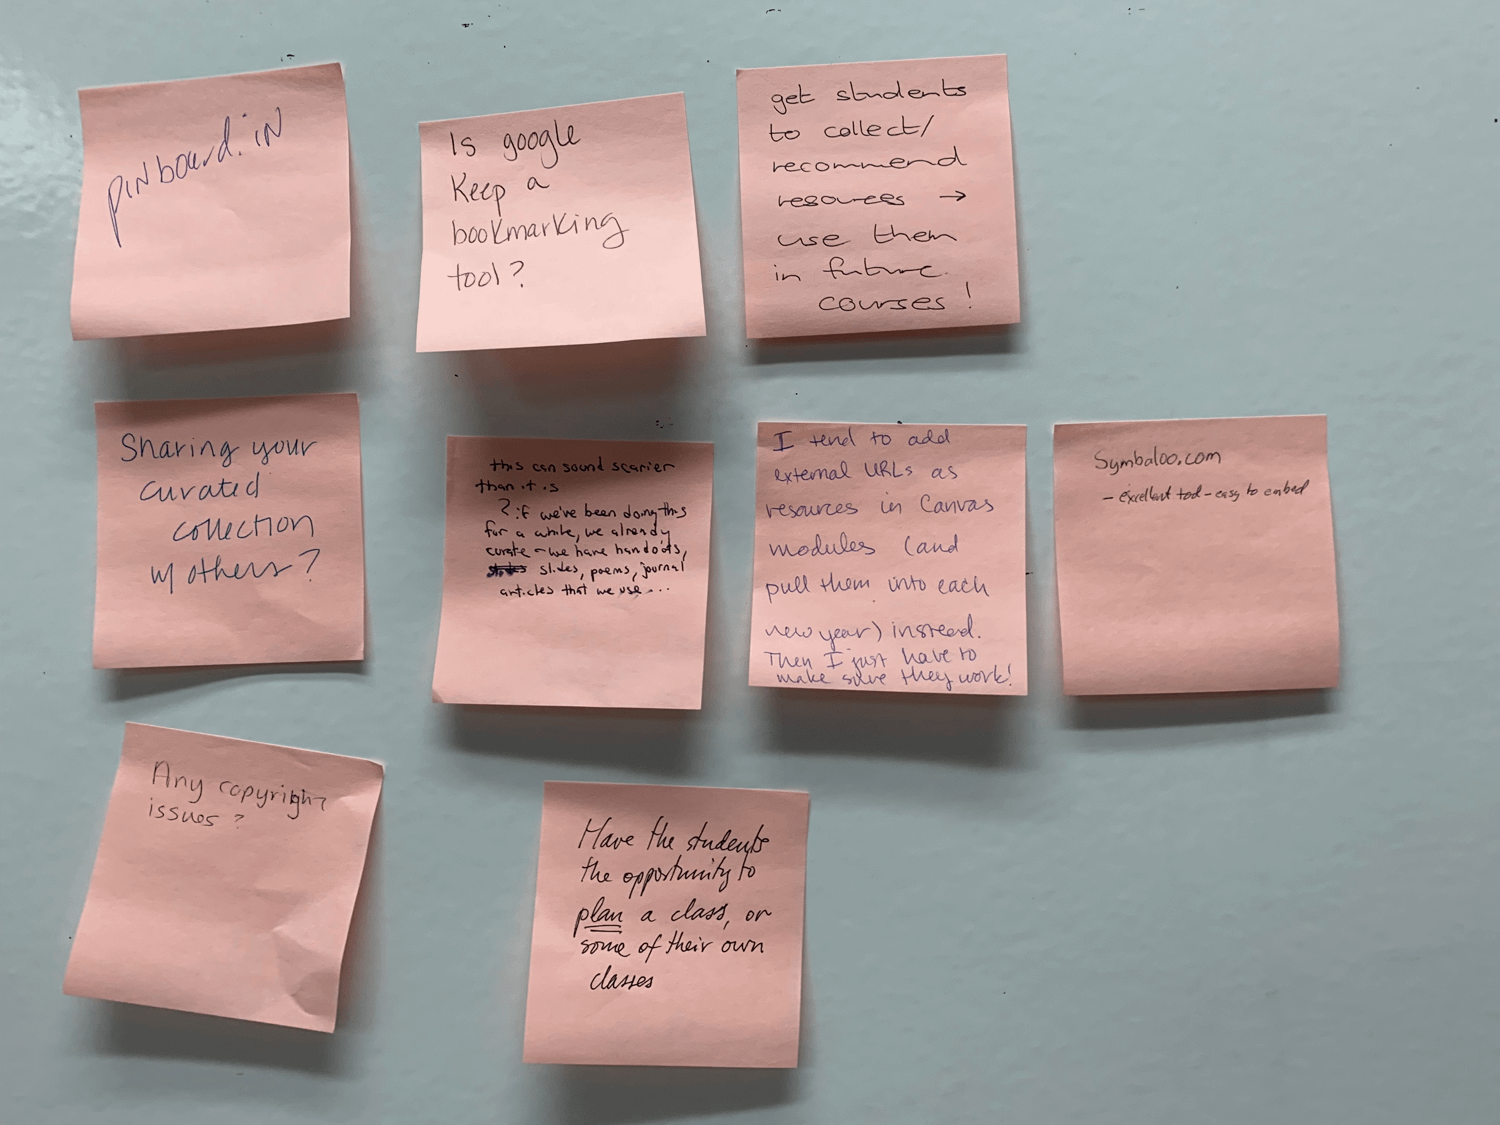 Curate2 stickies